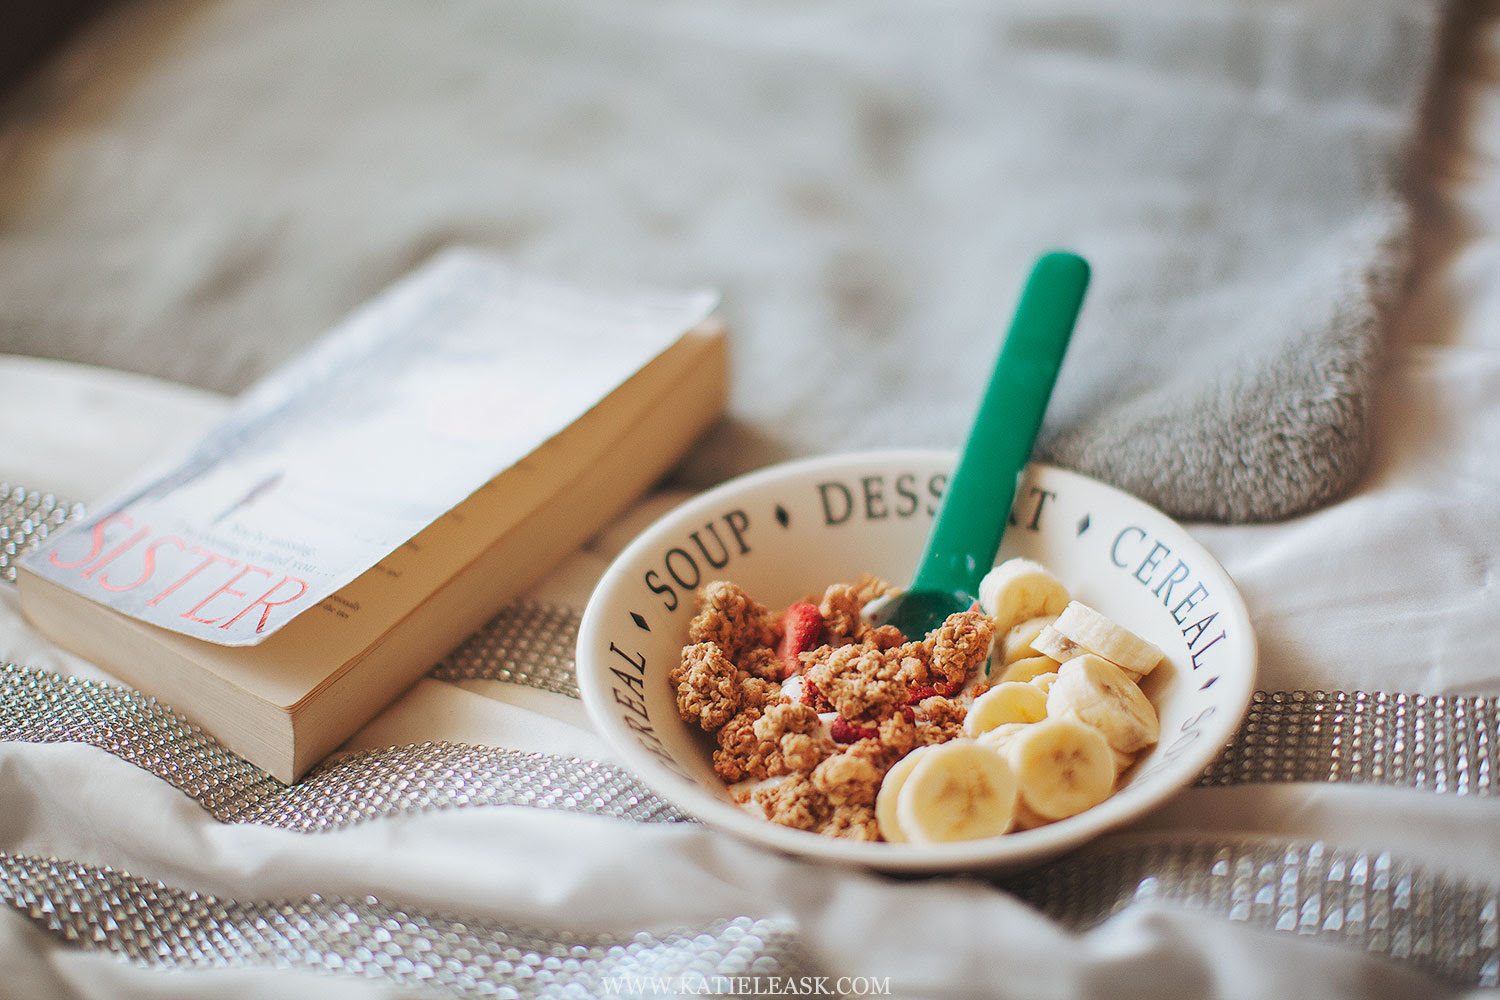 Healthy-Breakfast-Katie-Leask-Photography-003-S